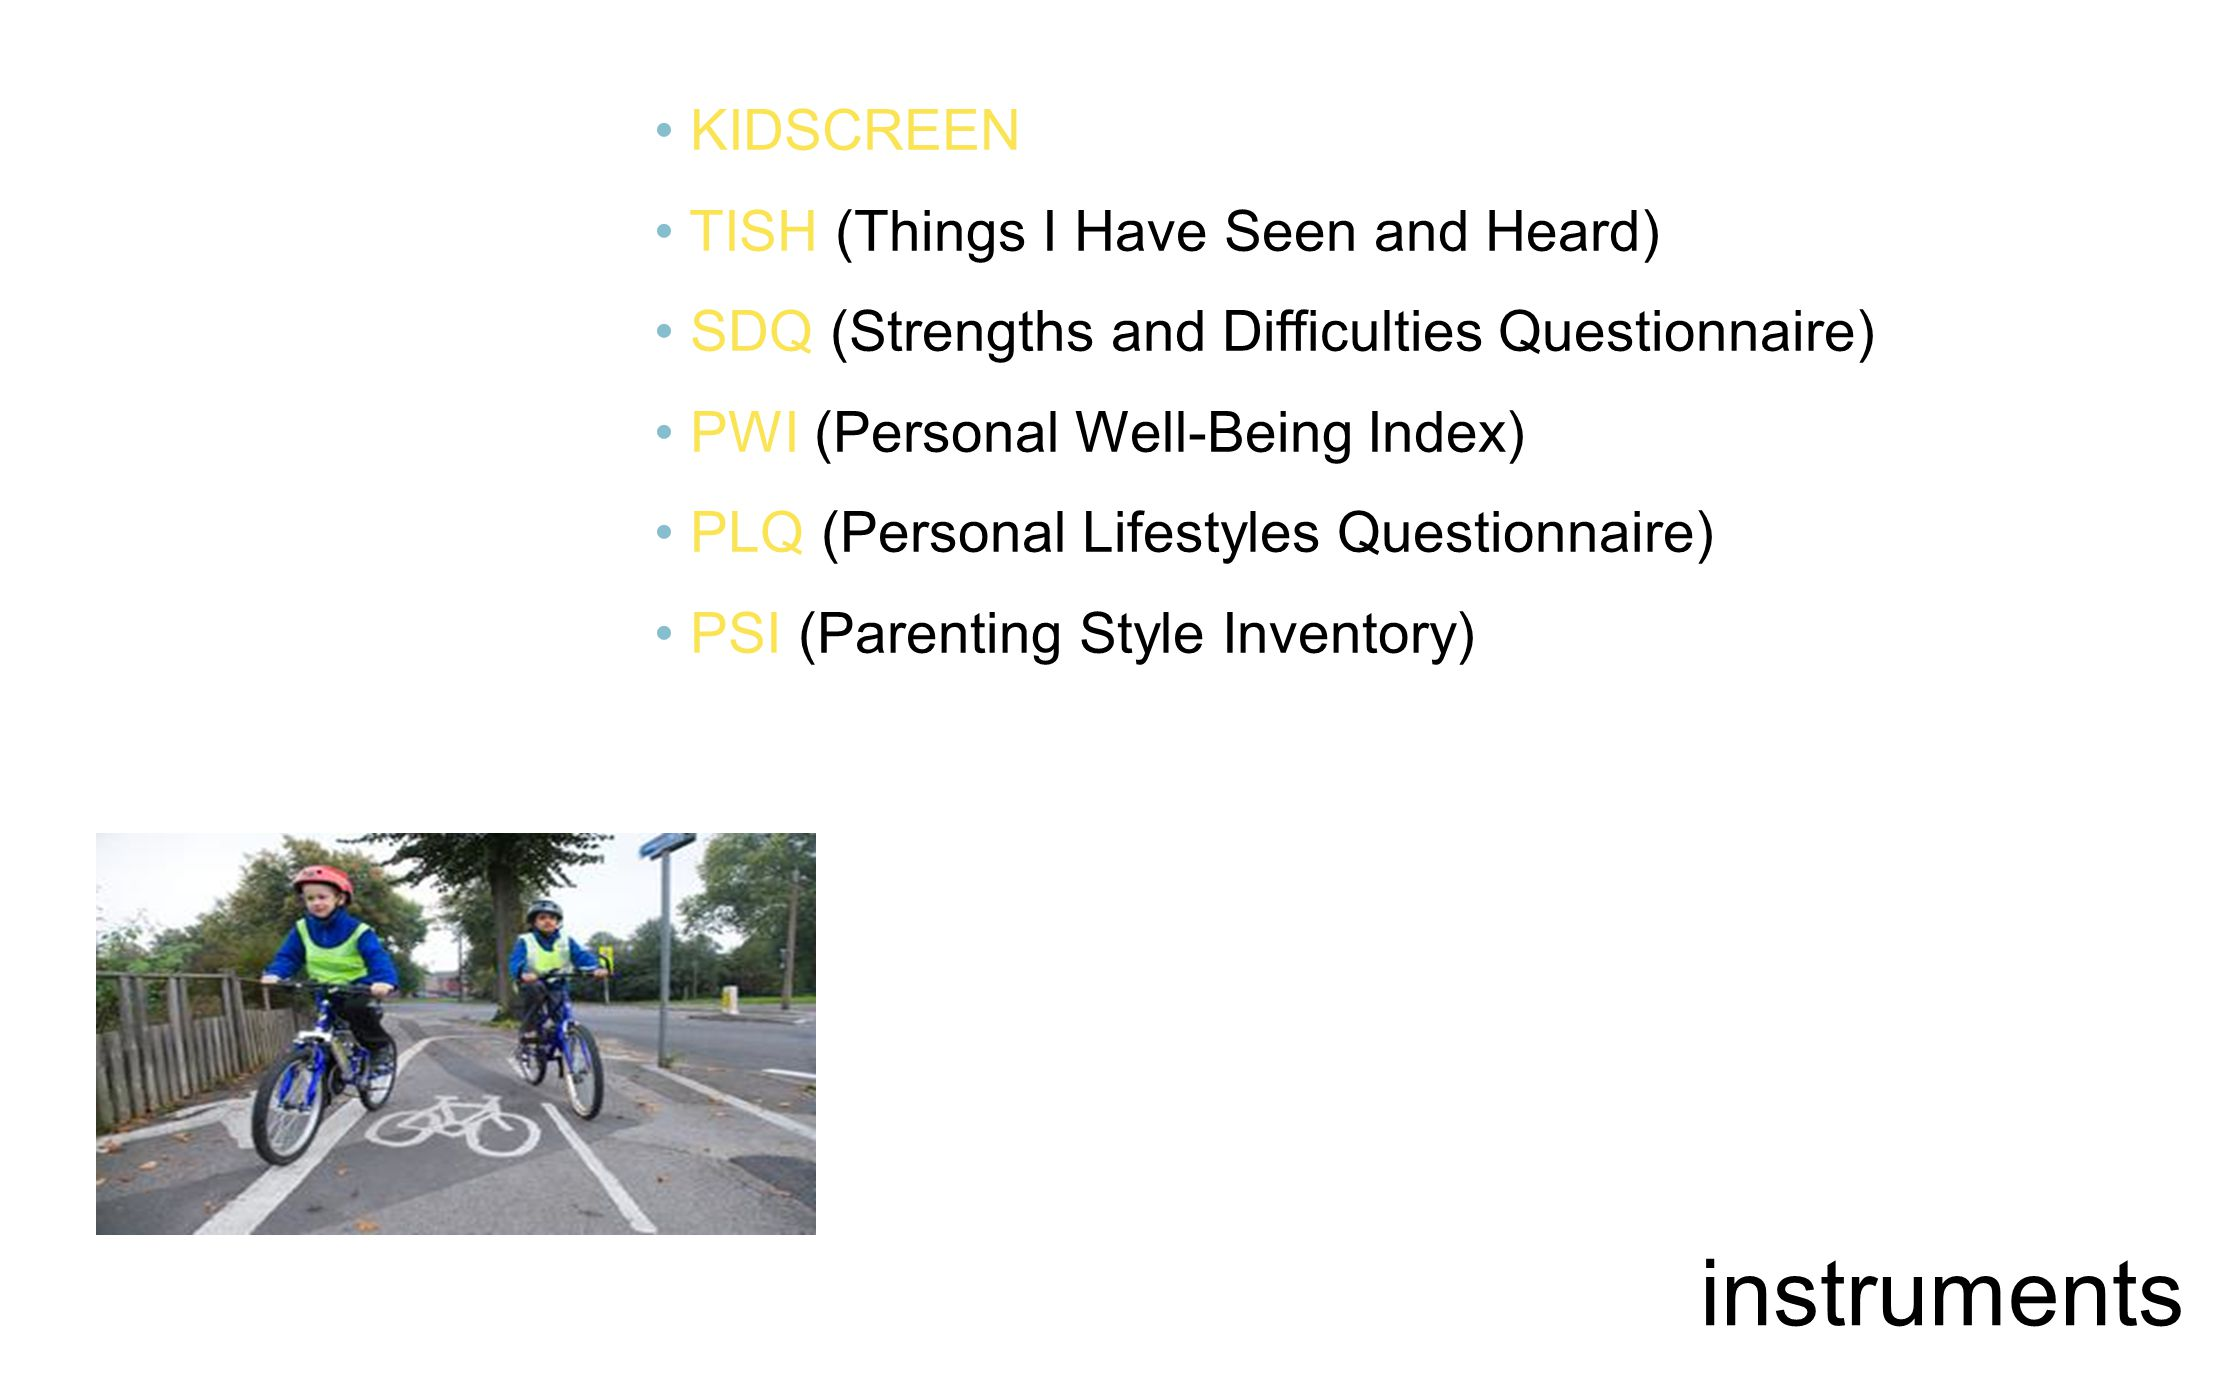 KIDSCREEN TISH (Things I Have Seen and Heard) SDQ (Strengths and Difficulties Questionnaire) PWI (Personal Well-Being Index) PLQ (Personal Lifestyles Questionnaire) PSI (Parenting Style Inventory) instruments